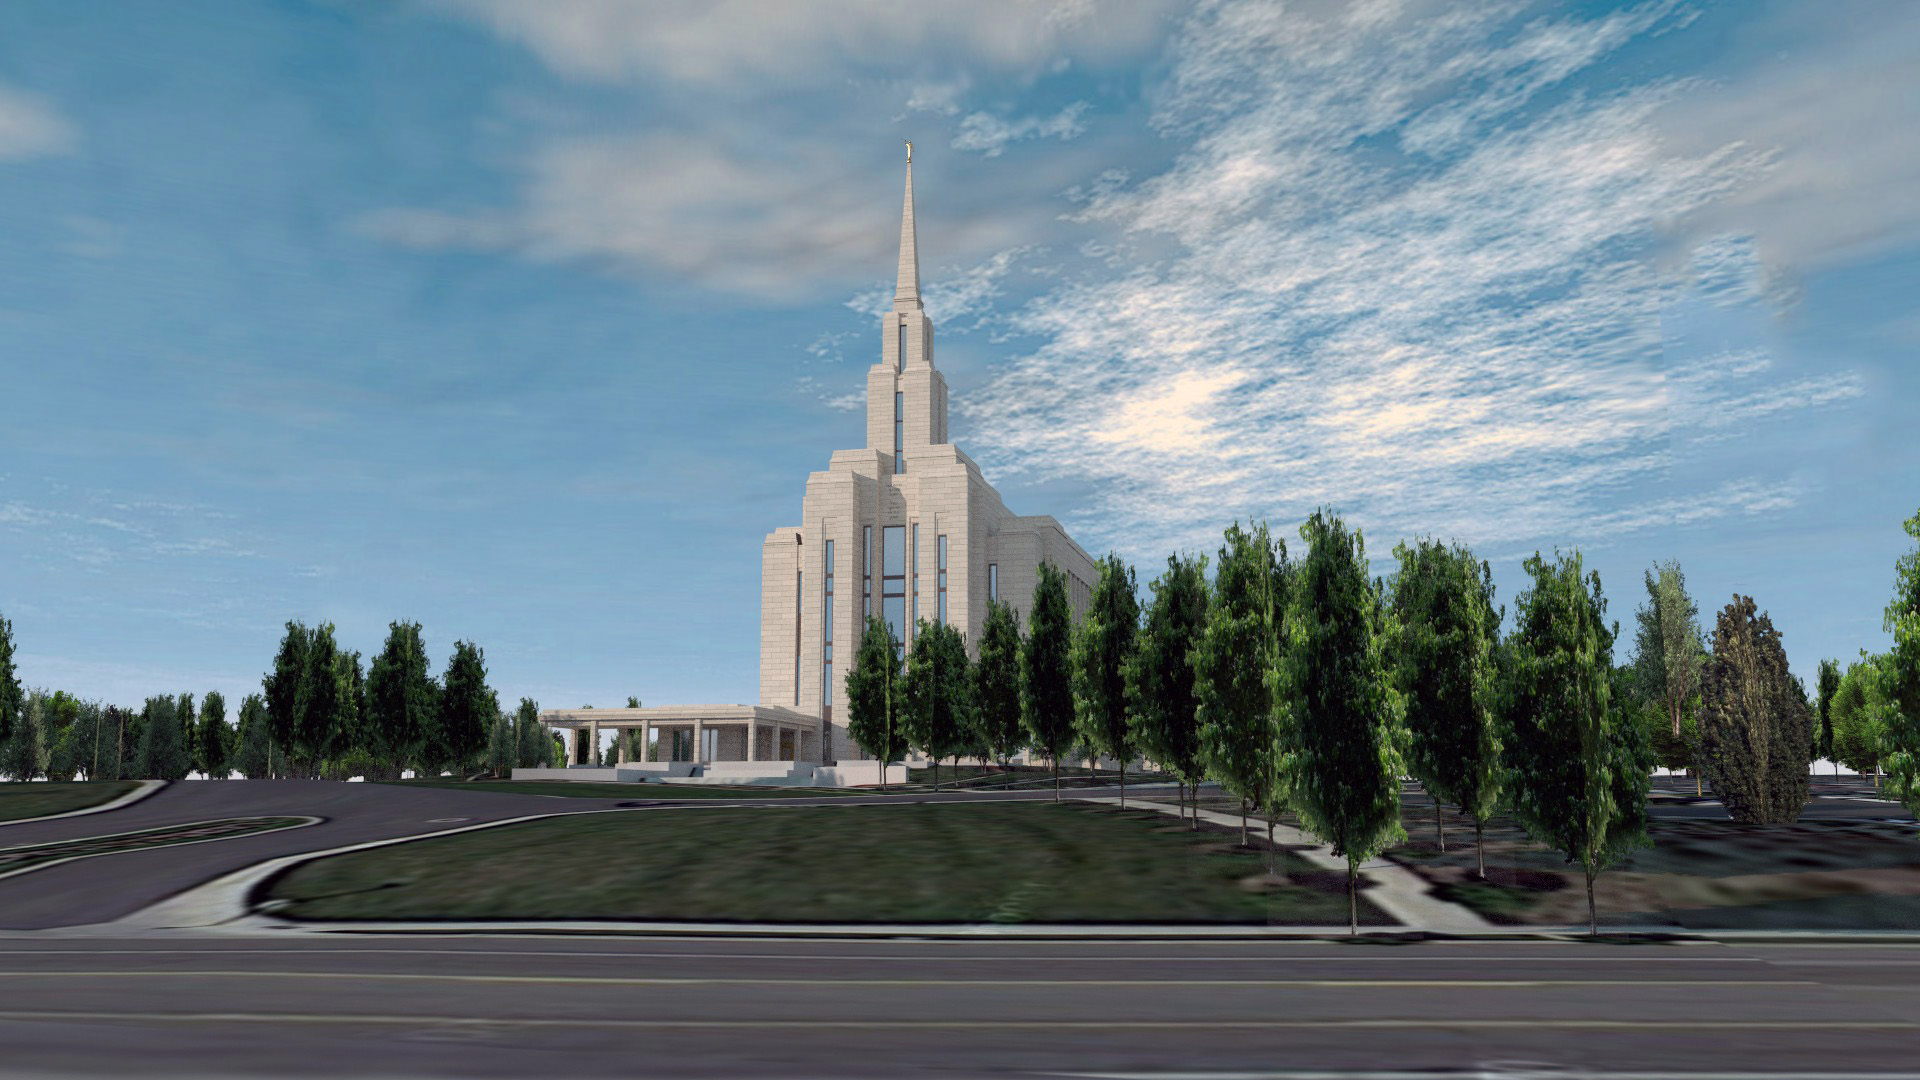 Oquirrrh Mountain Utah Temple